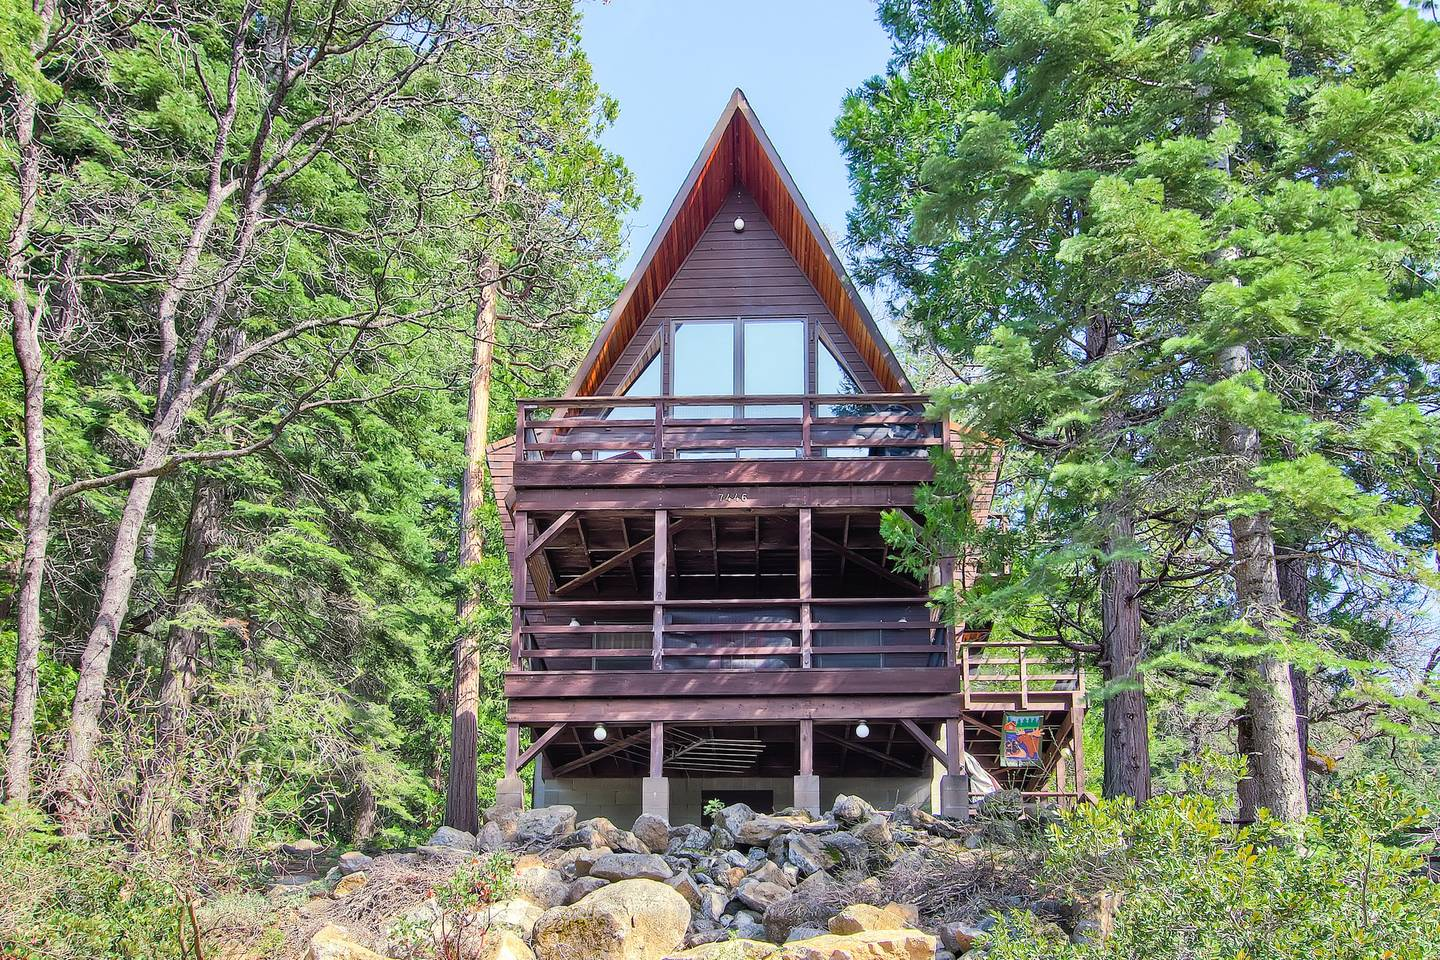 aframe airbnb home close to yosemite park